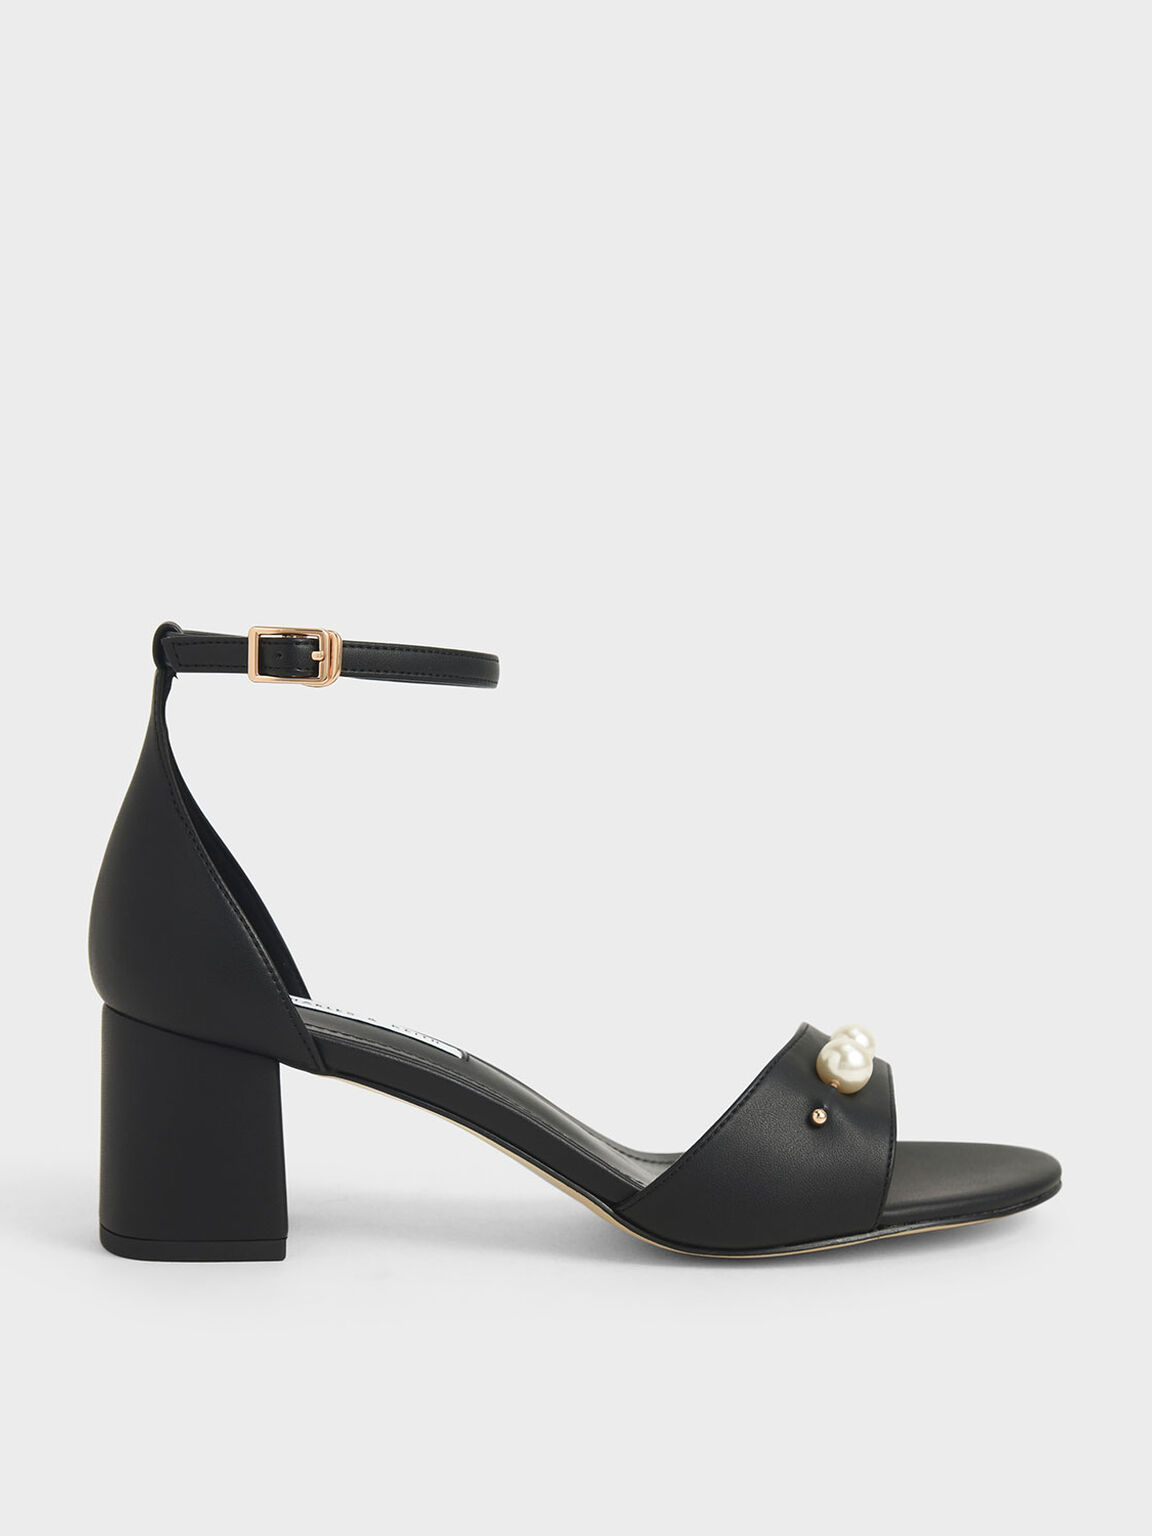 Embellished Block Heel Sandals, Black, hi-res